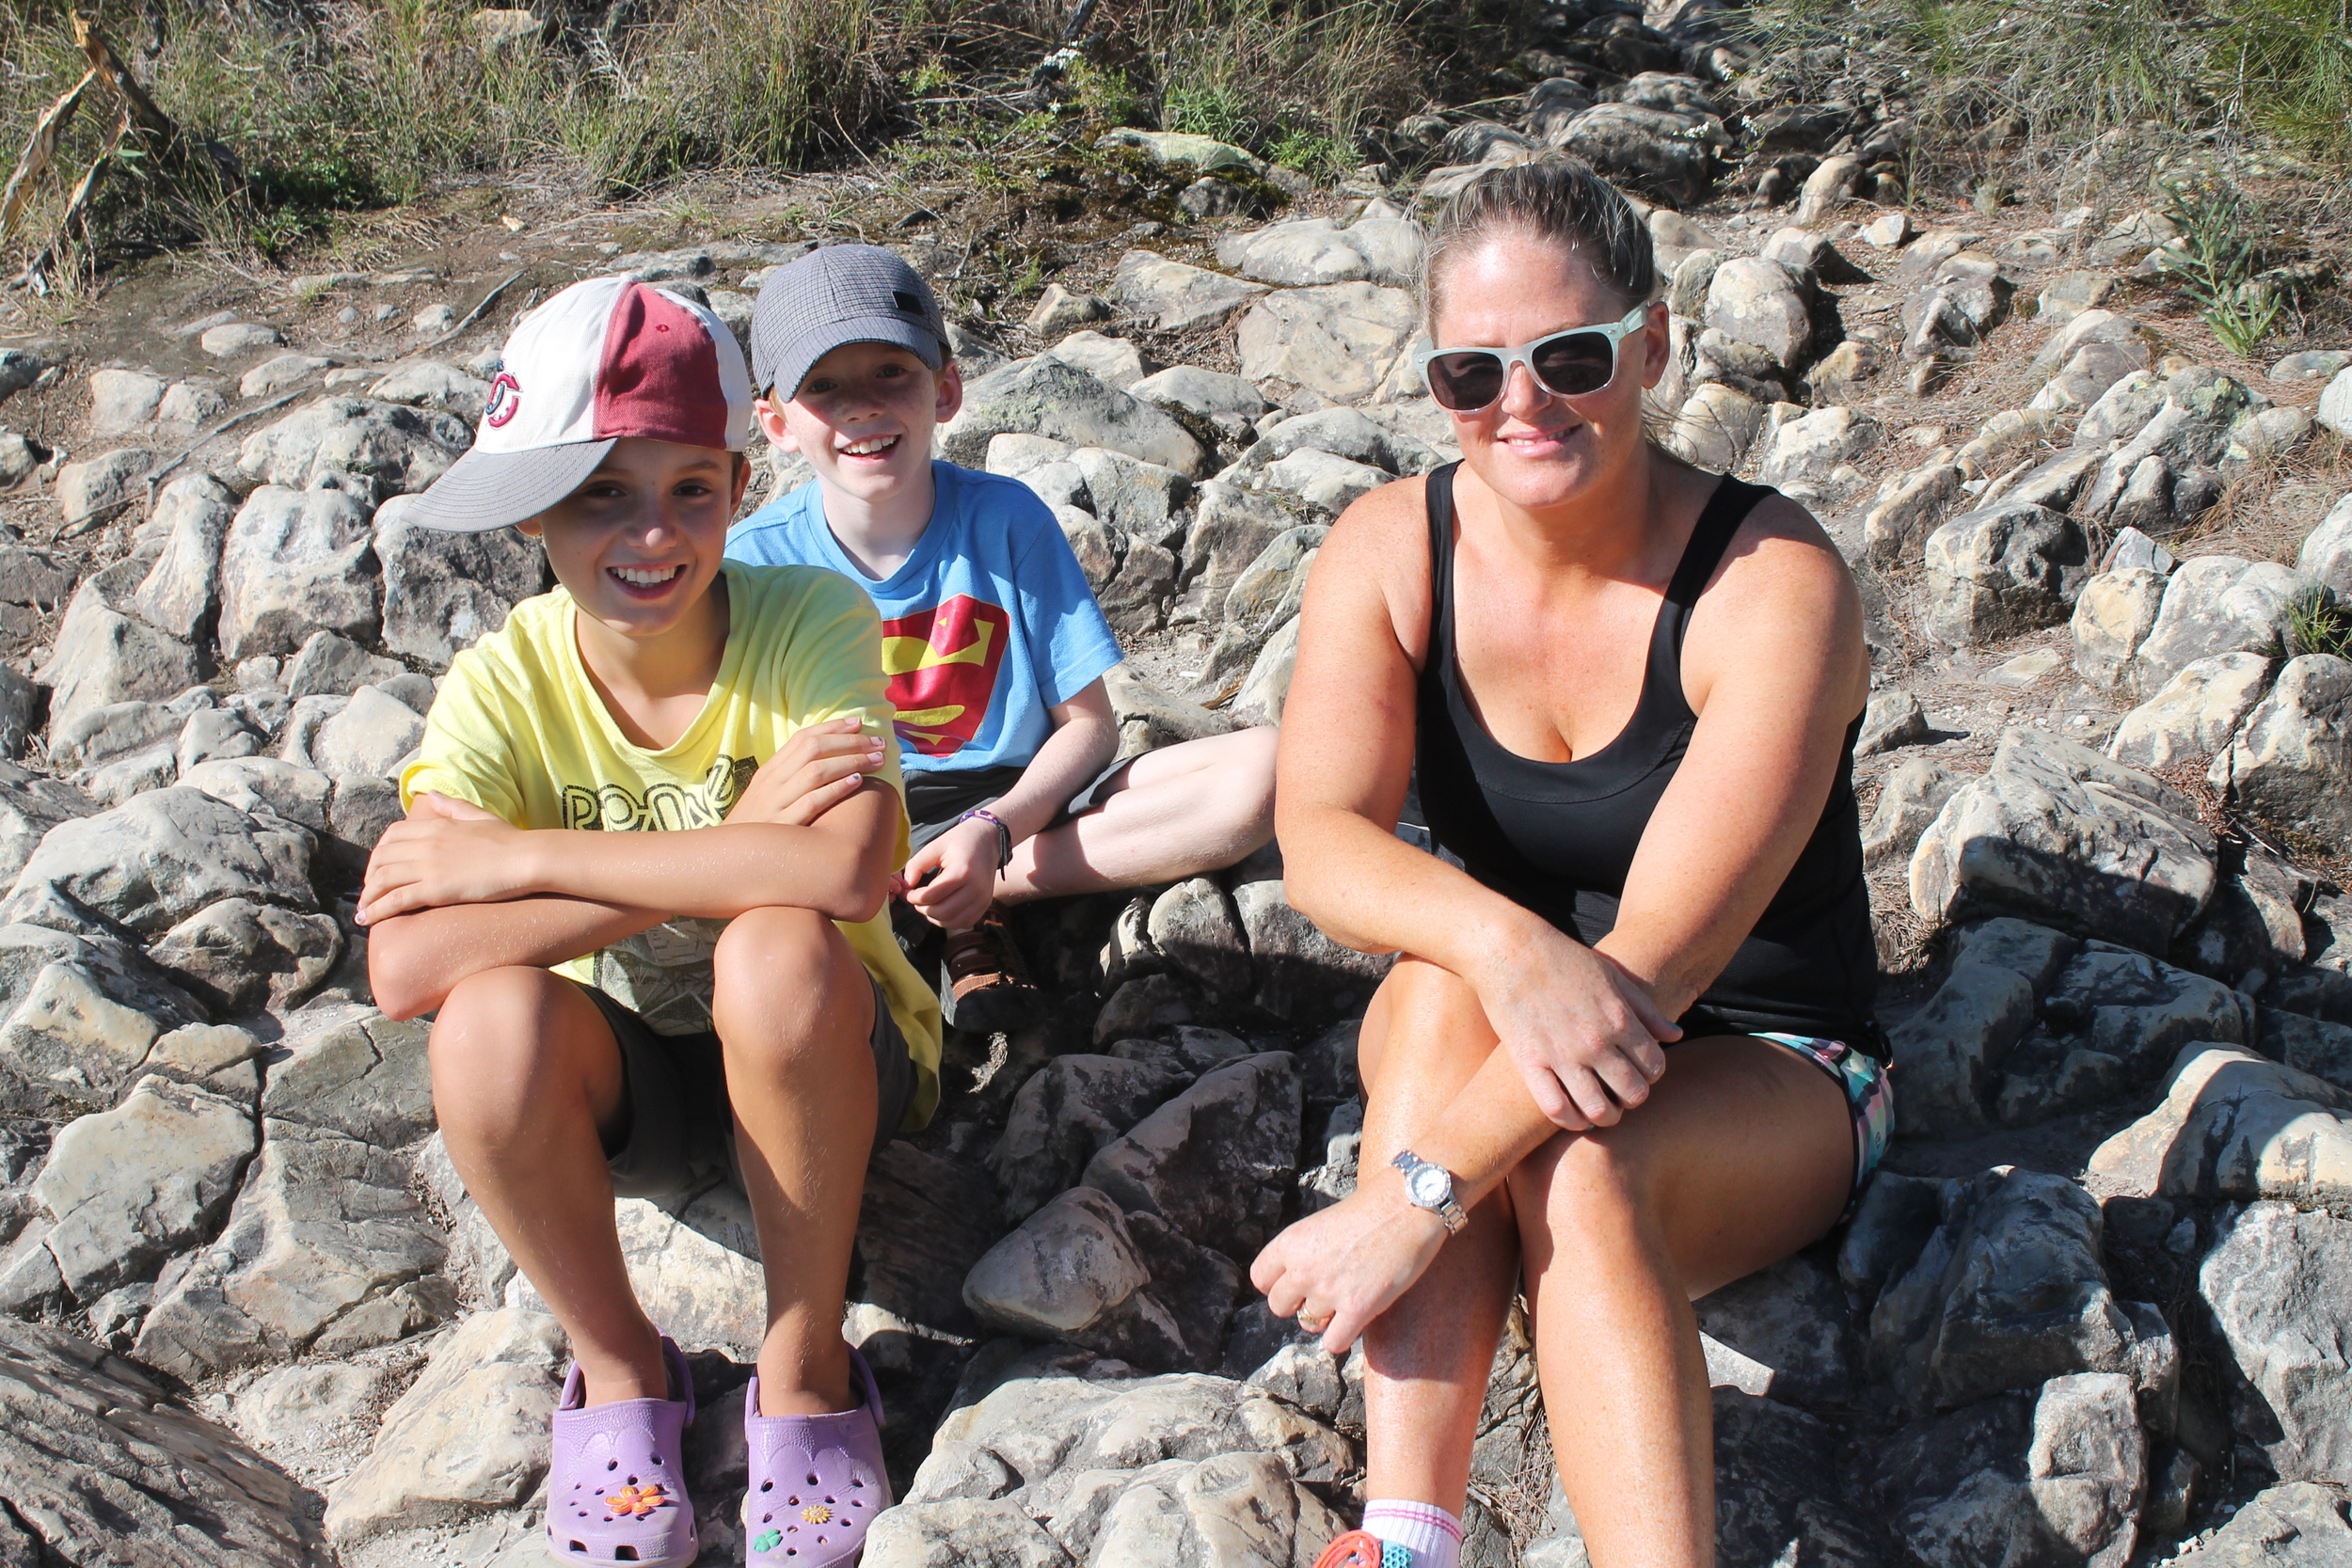 At the top of Mount Coolum